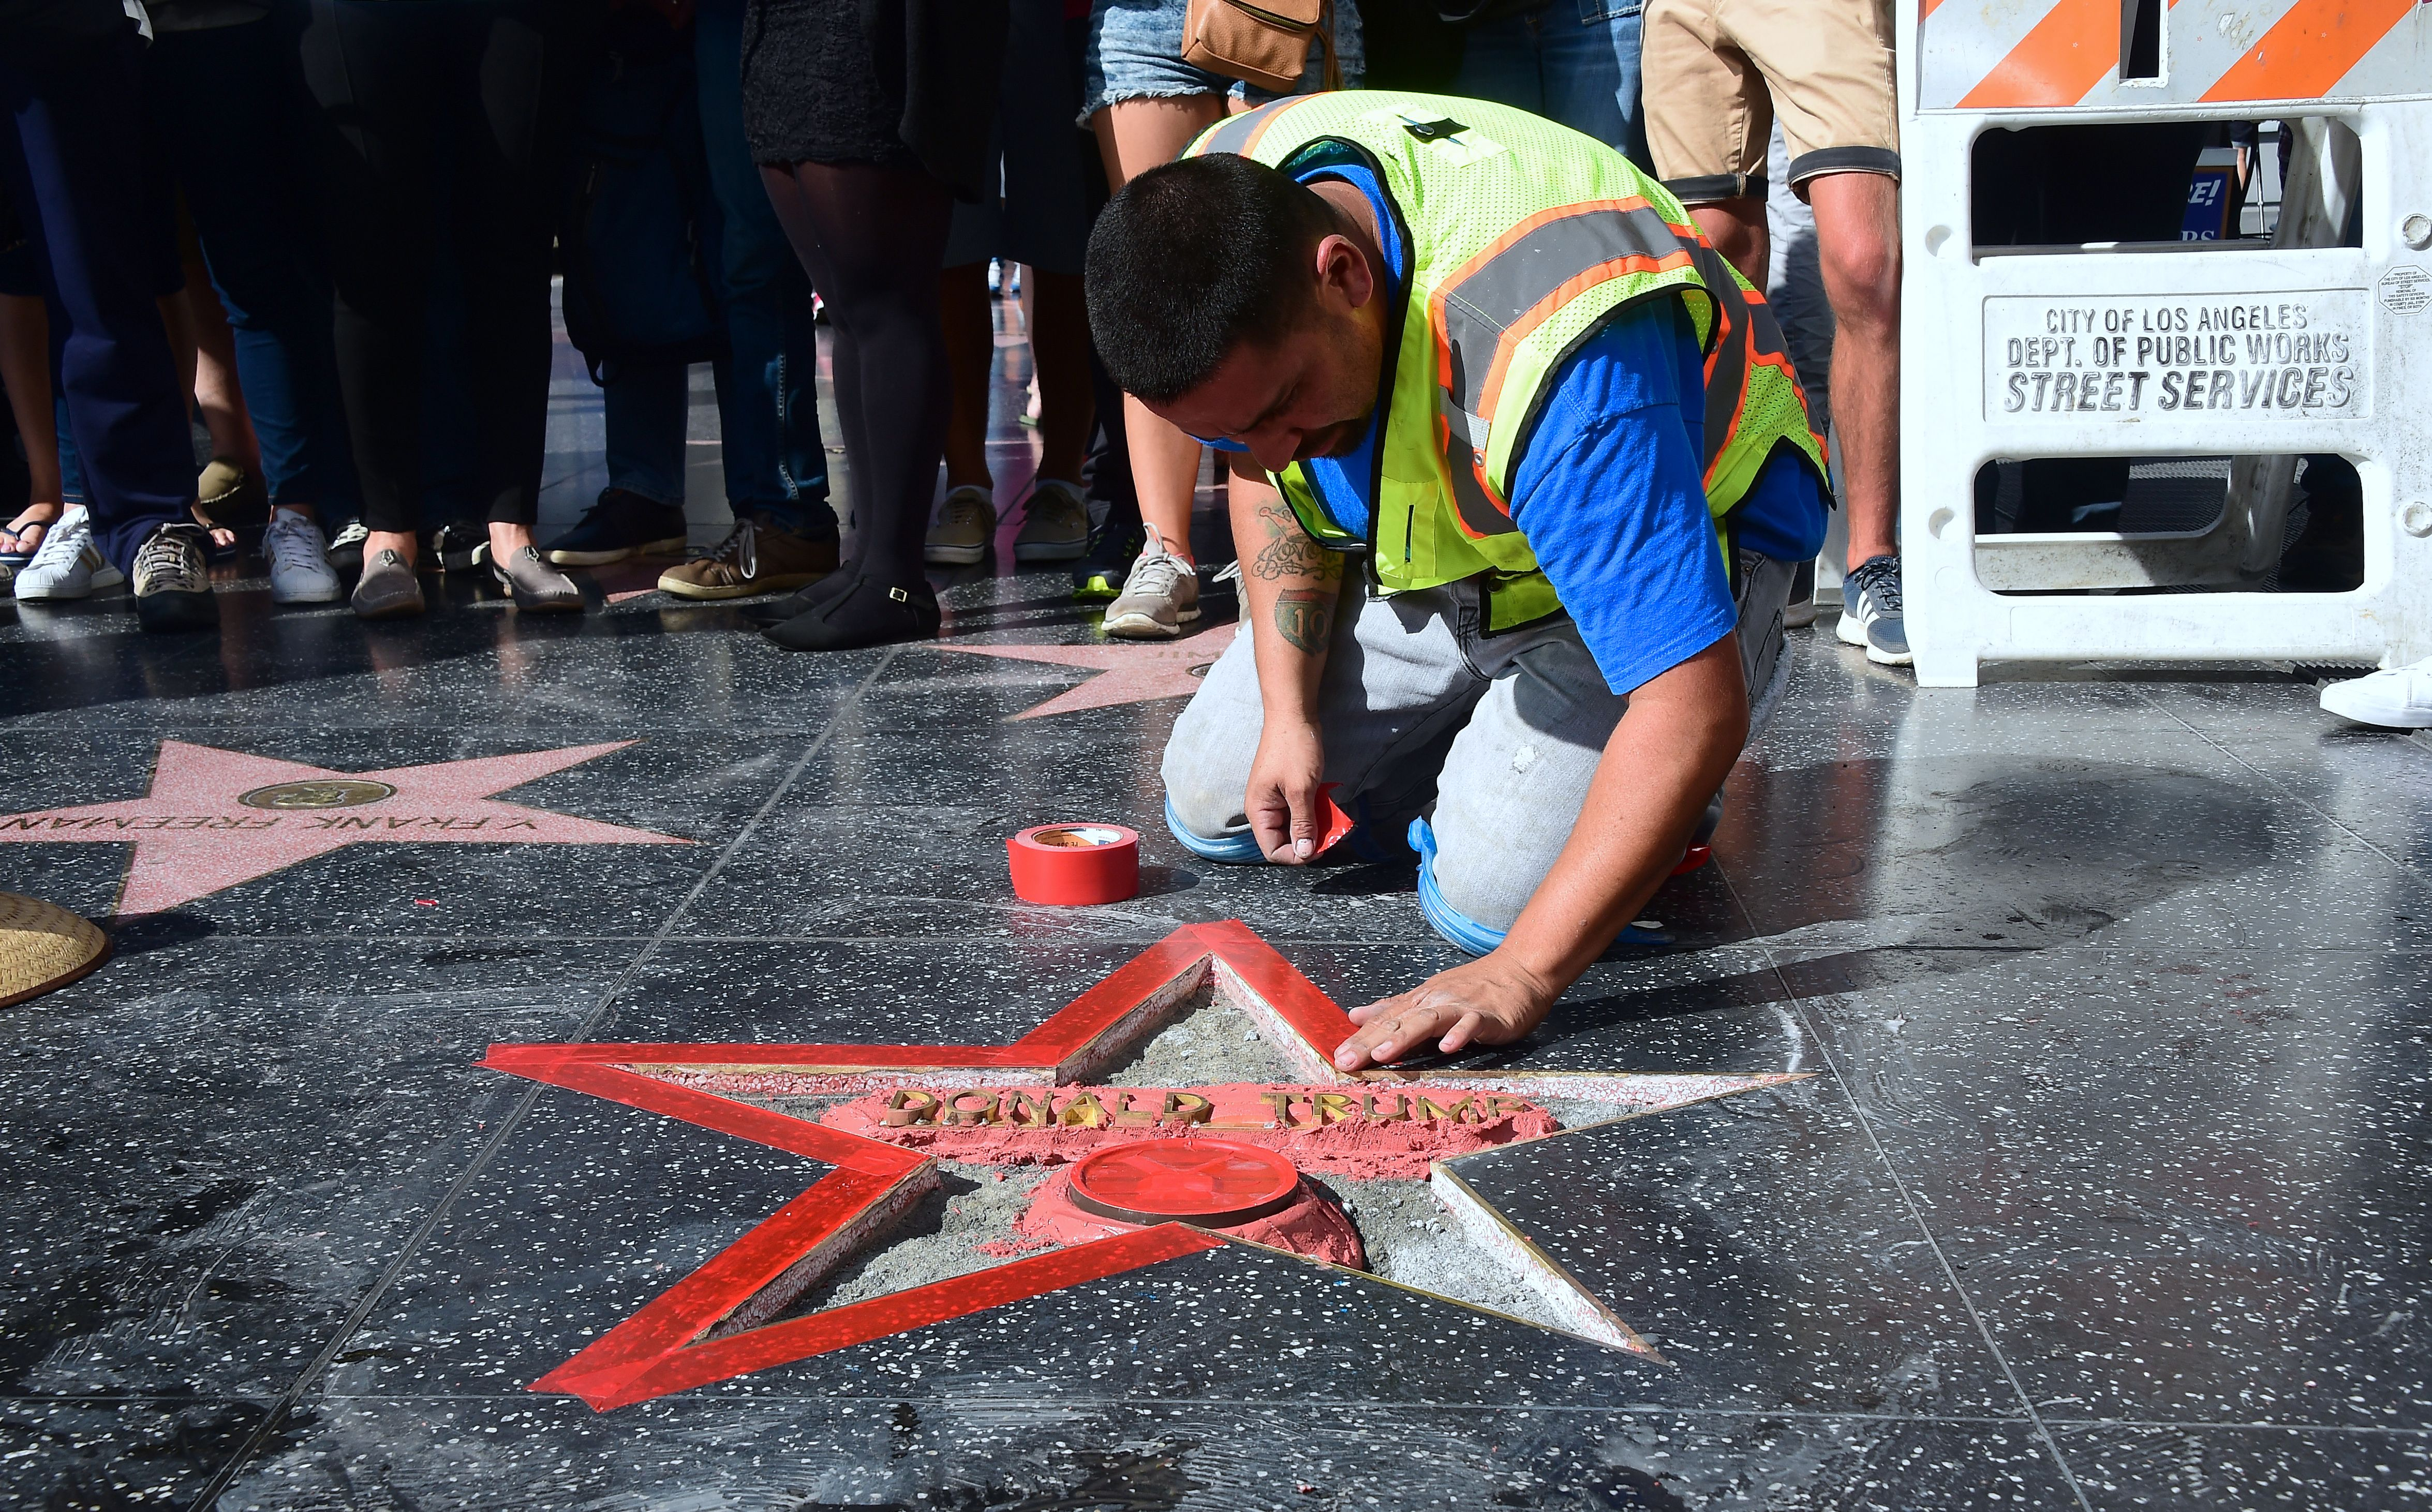 James Otis damaged Trump's star